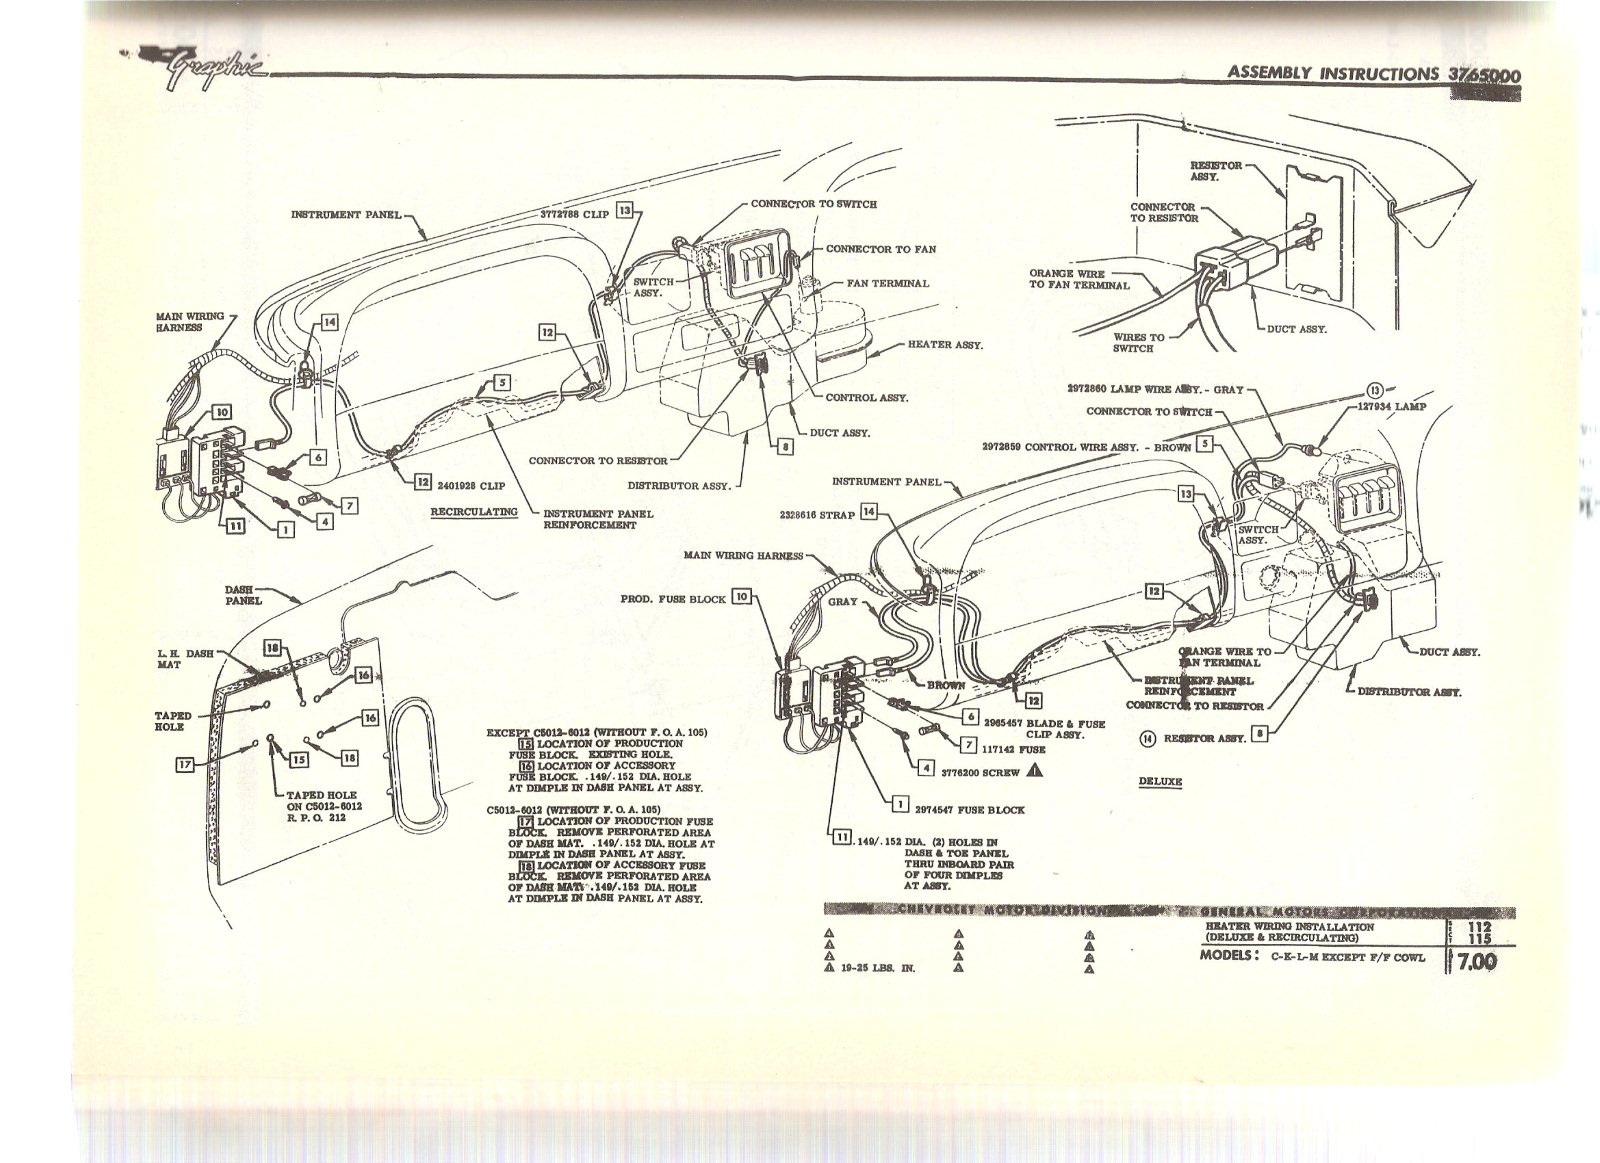 1985 chevy pickup wiring diagram schematics and wiring diagrams 2007 chevy silverado wiring diagram exles and